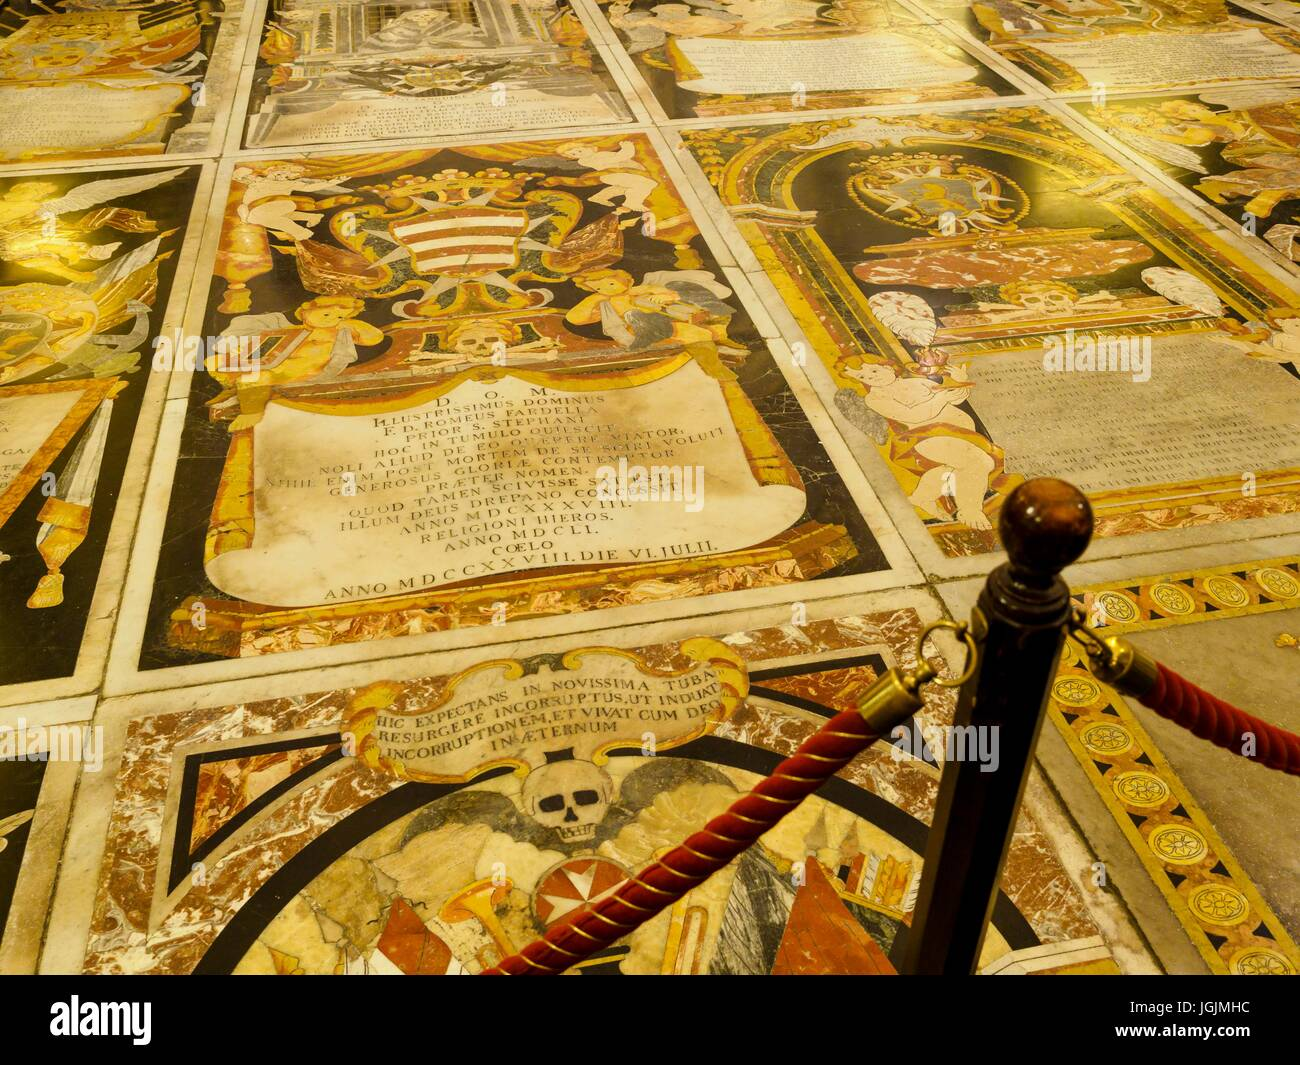 The marble floor inside St. John's Co-Cathedral at the capital Valletta / Malta. - Stock Image